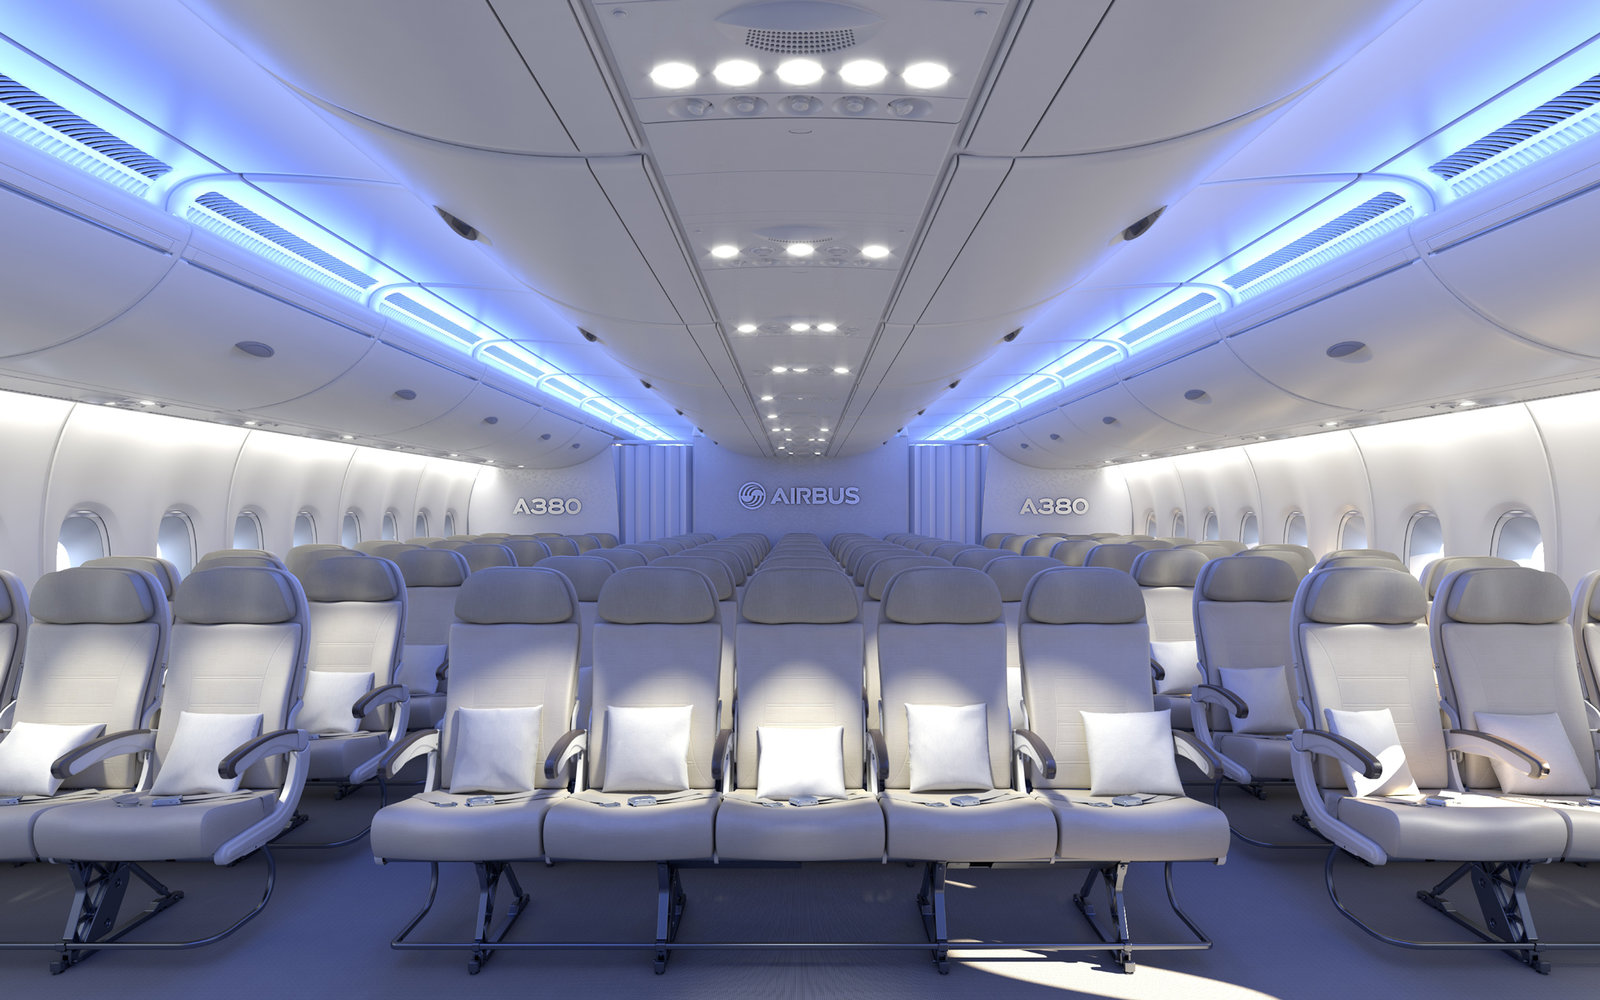 Airbus Design 3-5-3 Seating